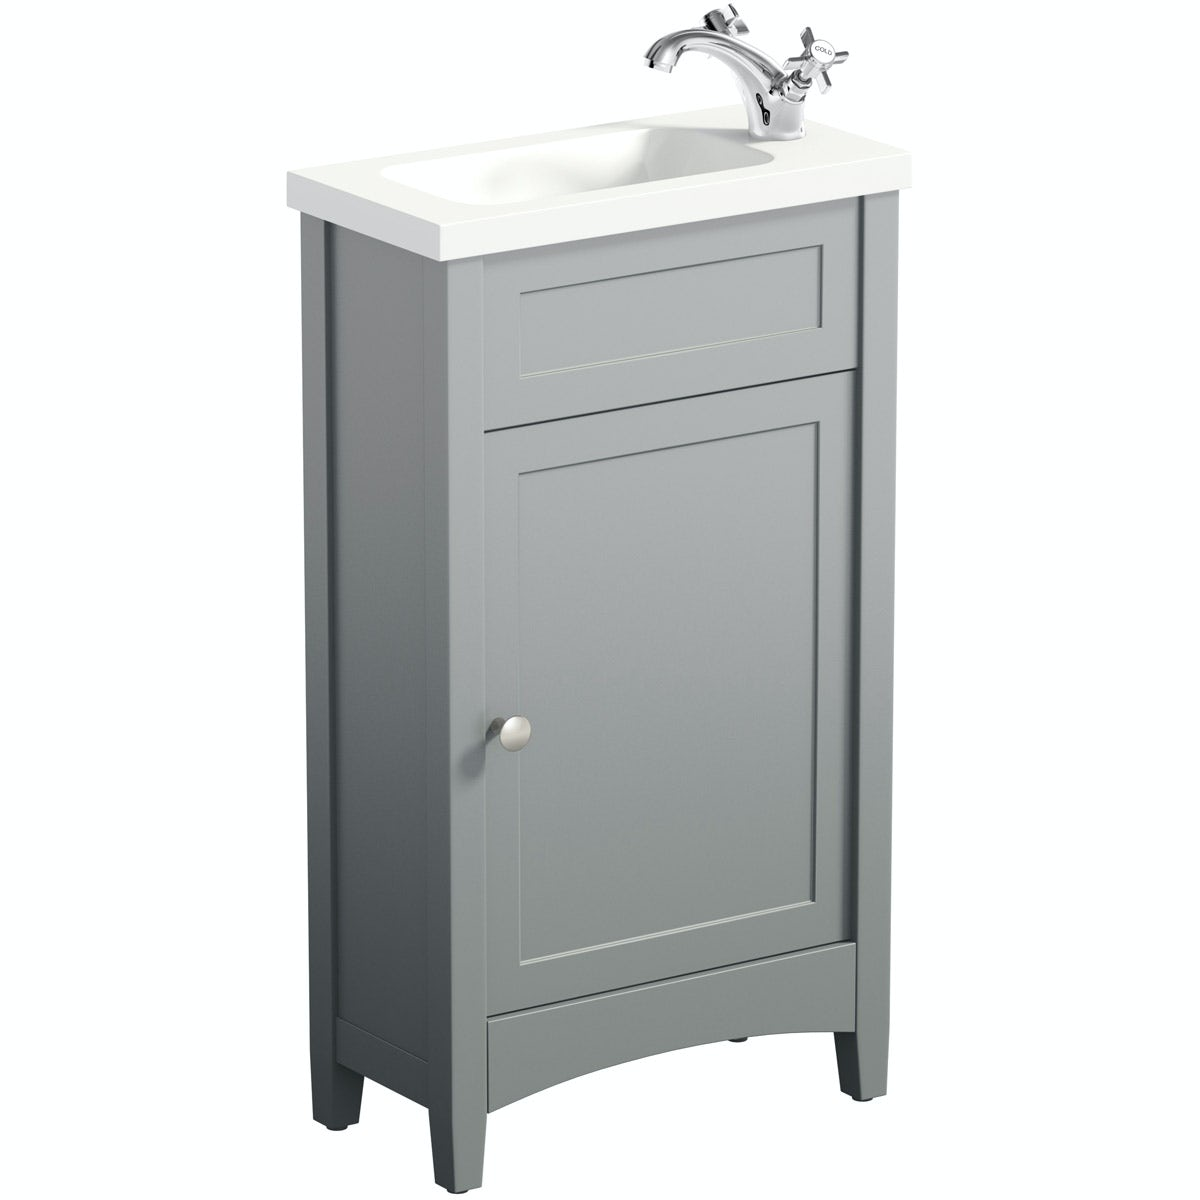 The Bath Co. Camberley satin grey cloakroom vanity with resin basin